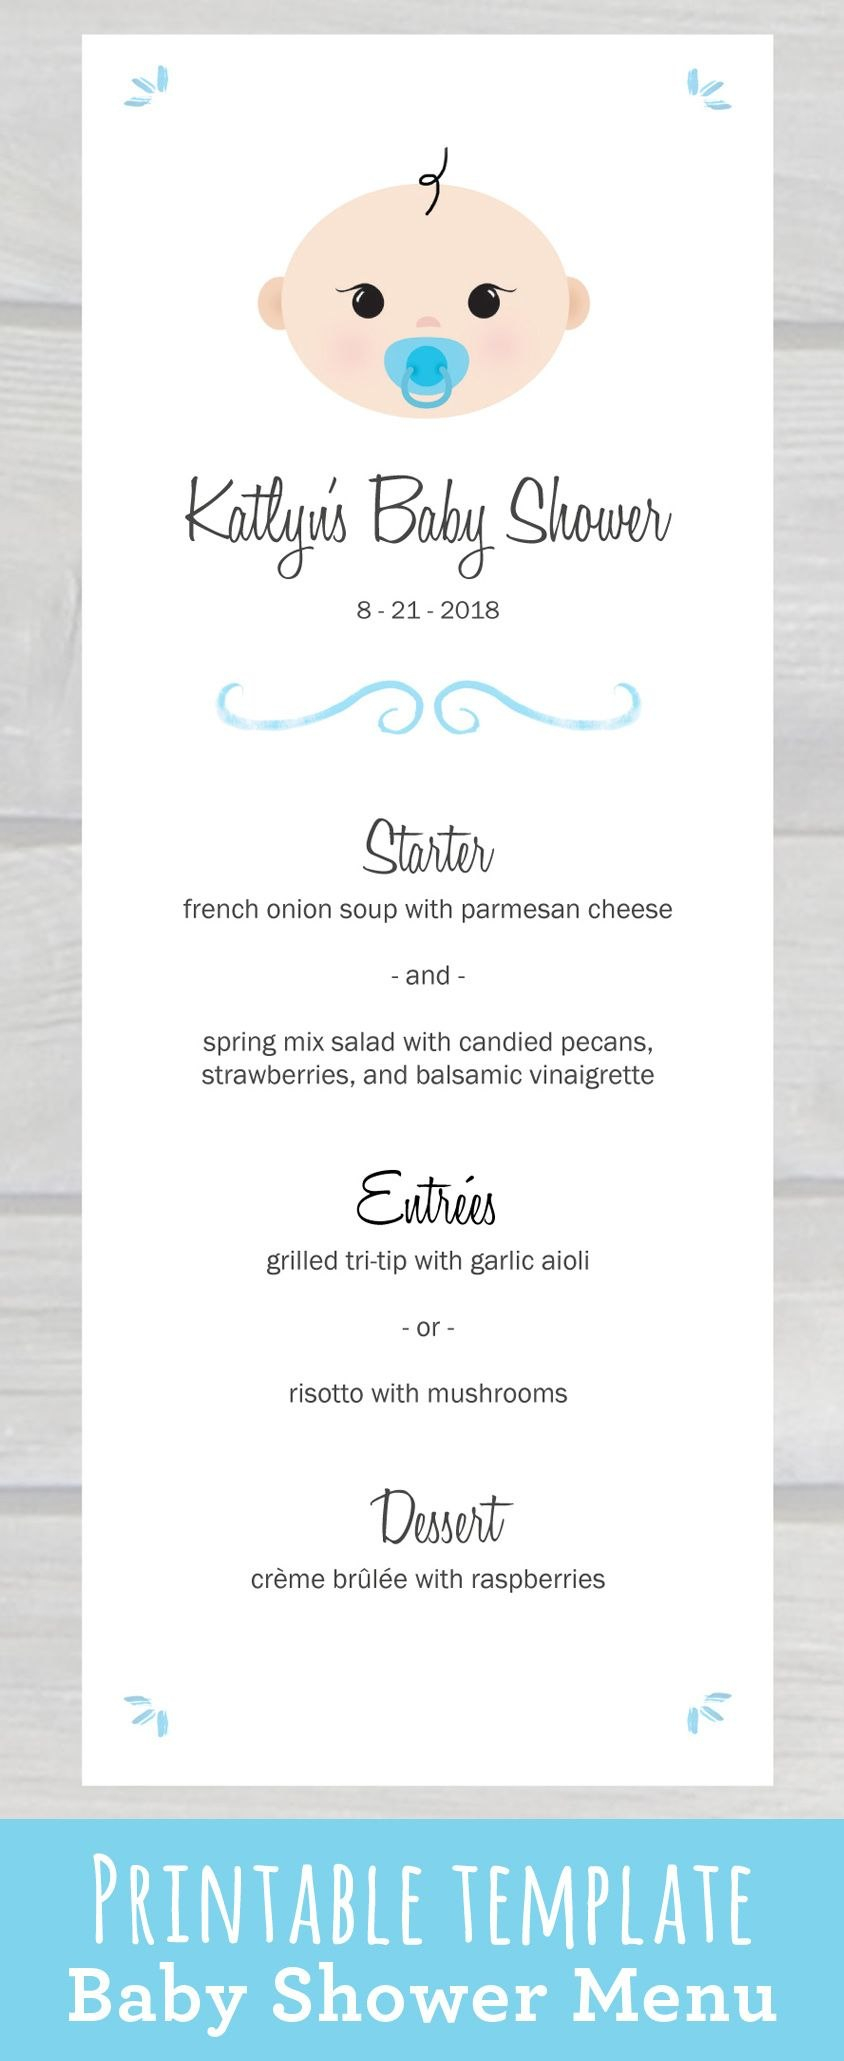 Use This Cute Baby Shower Menu Template Pdf To Edit  Print Your Own Throughout Baby Shower Menu Template